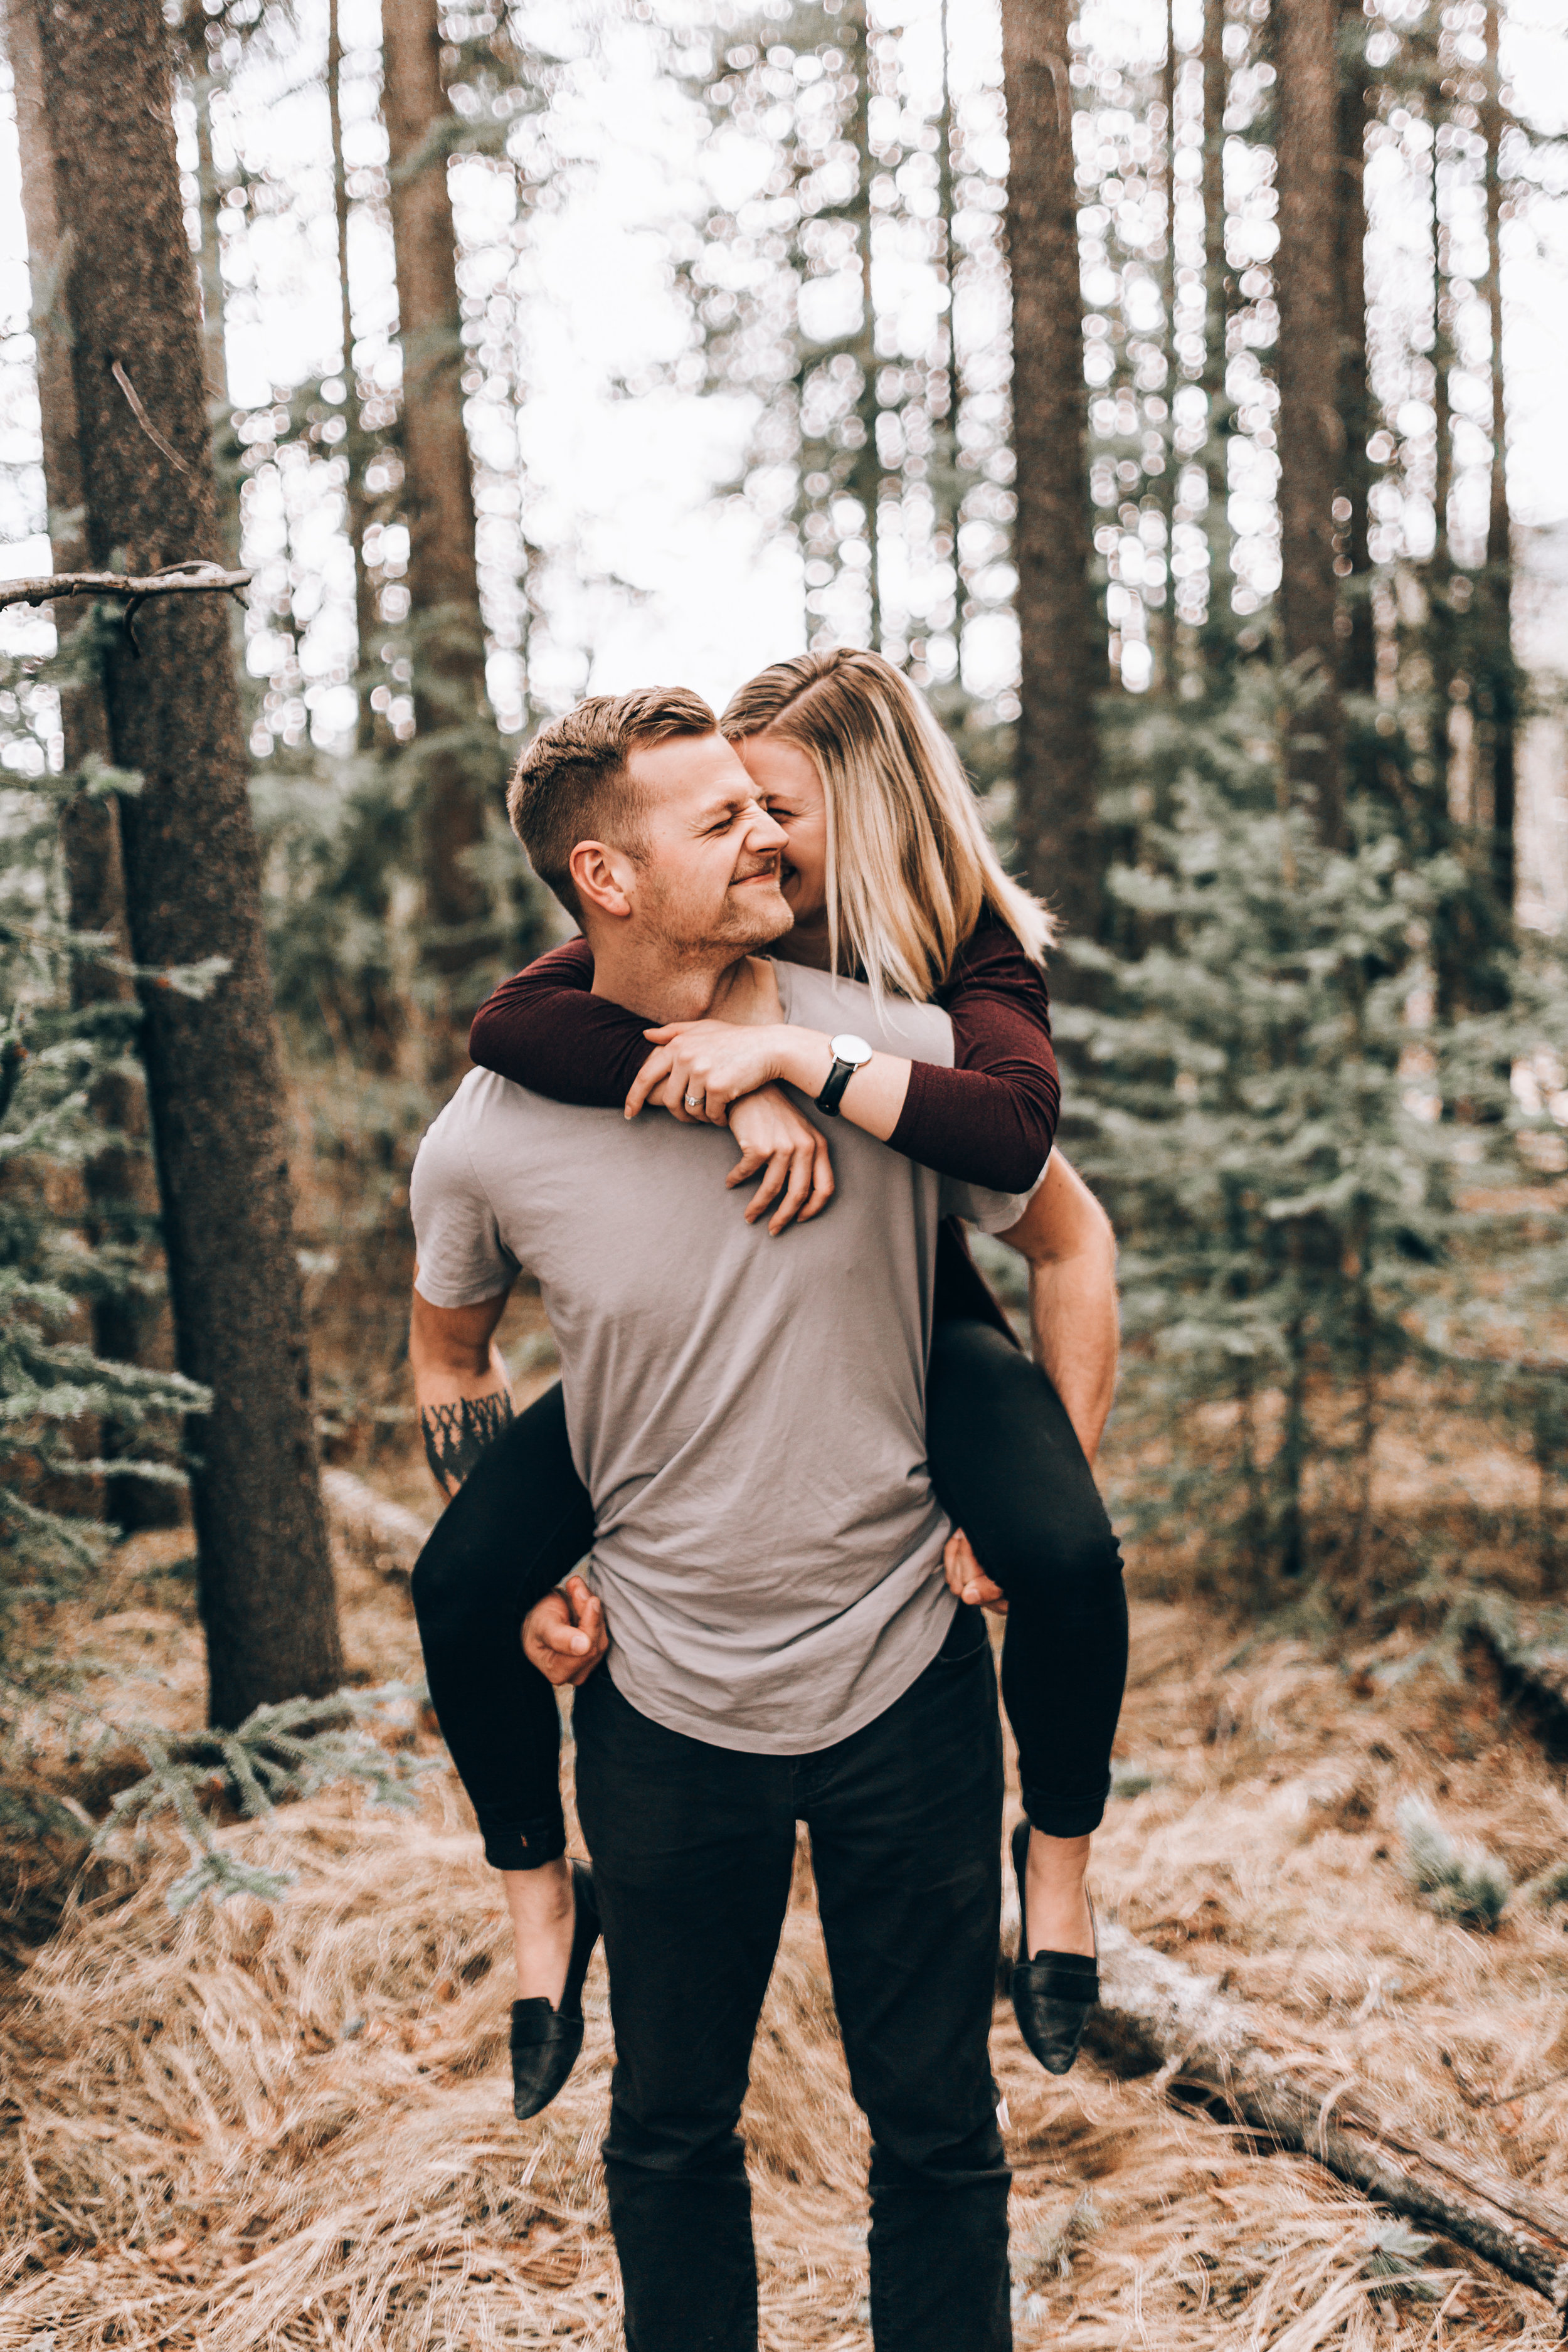 simpleperfectionsphotography.cullen+chelsey-36.jpg